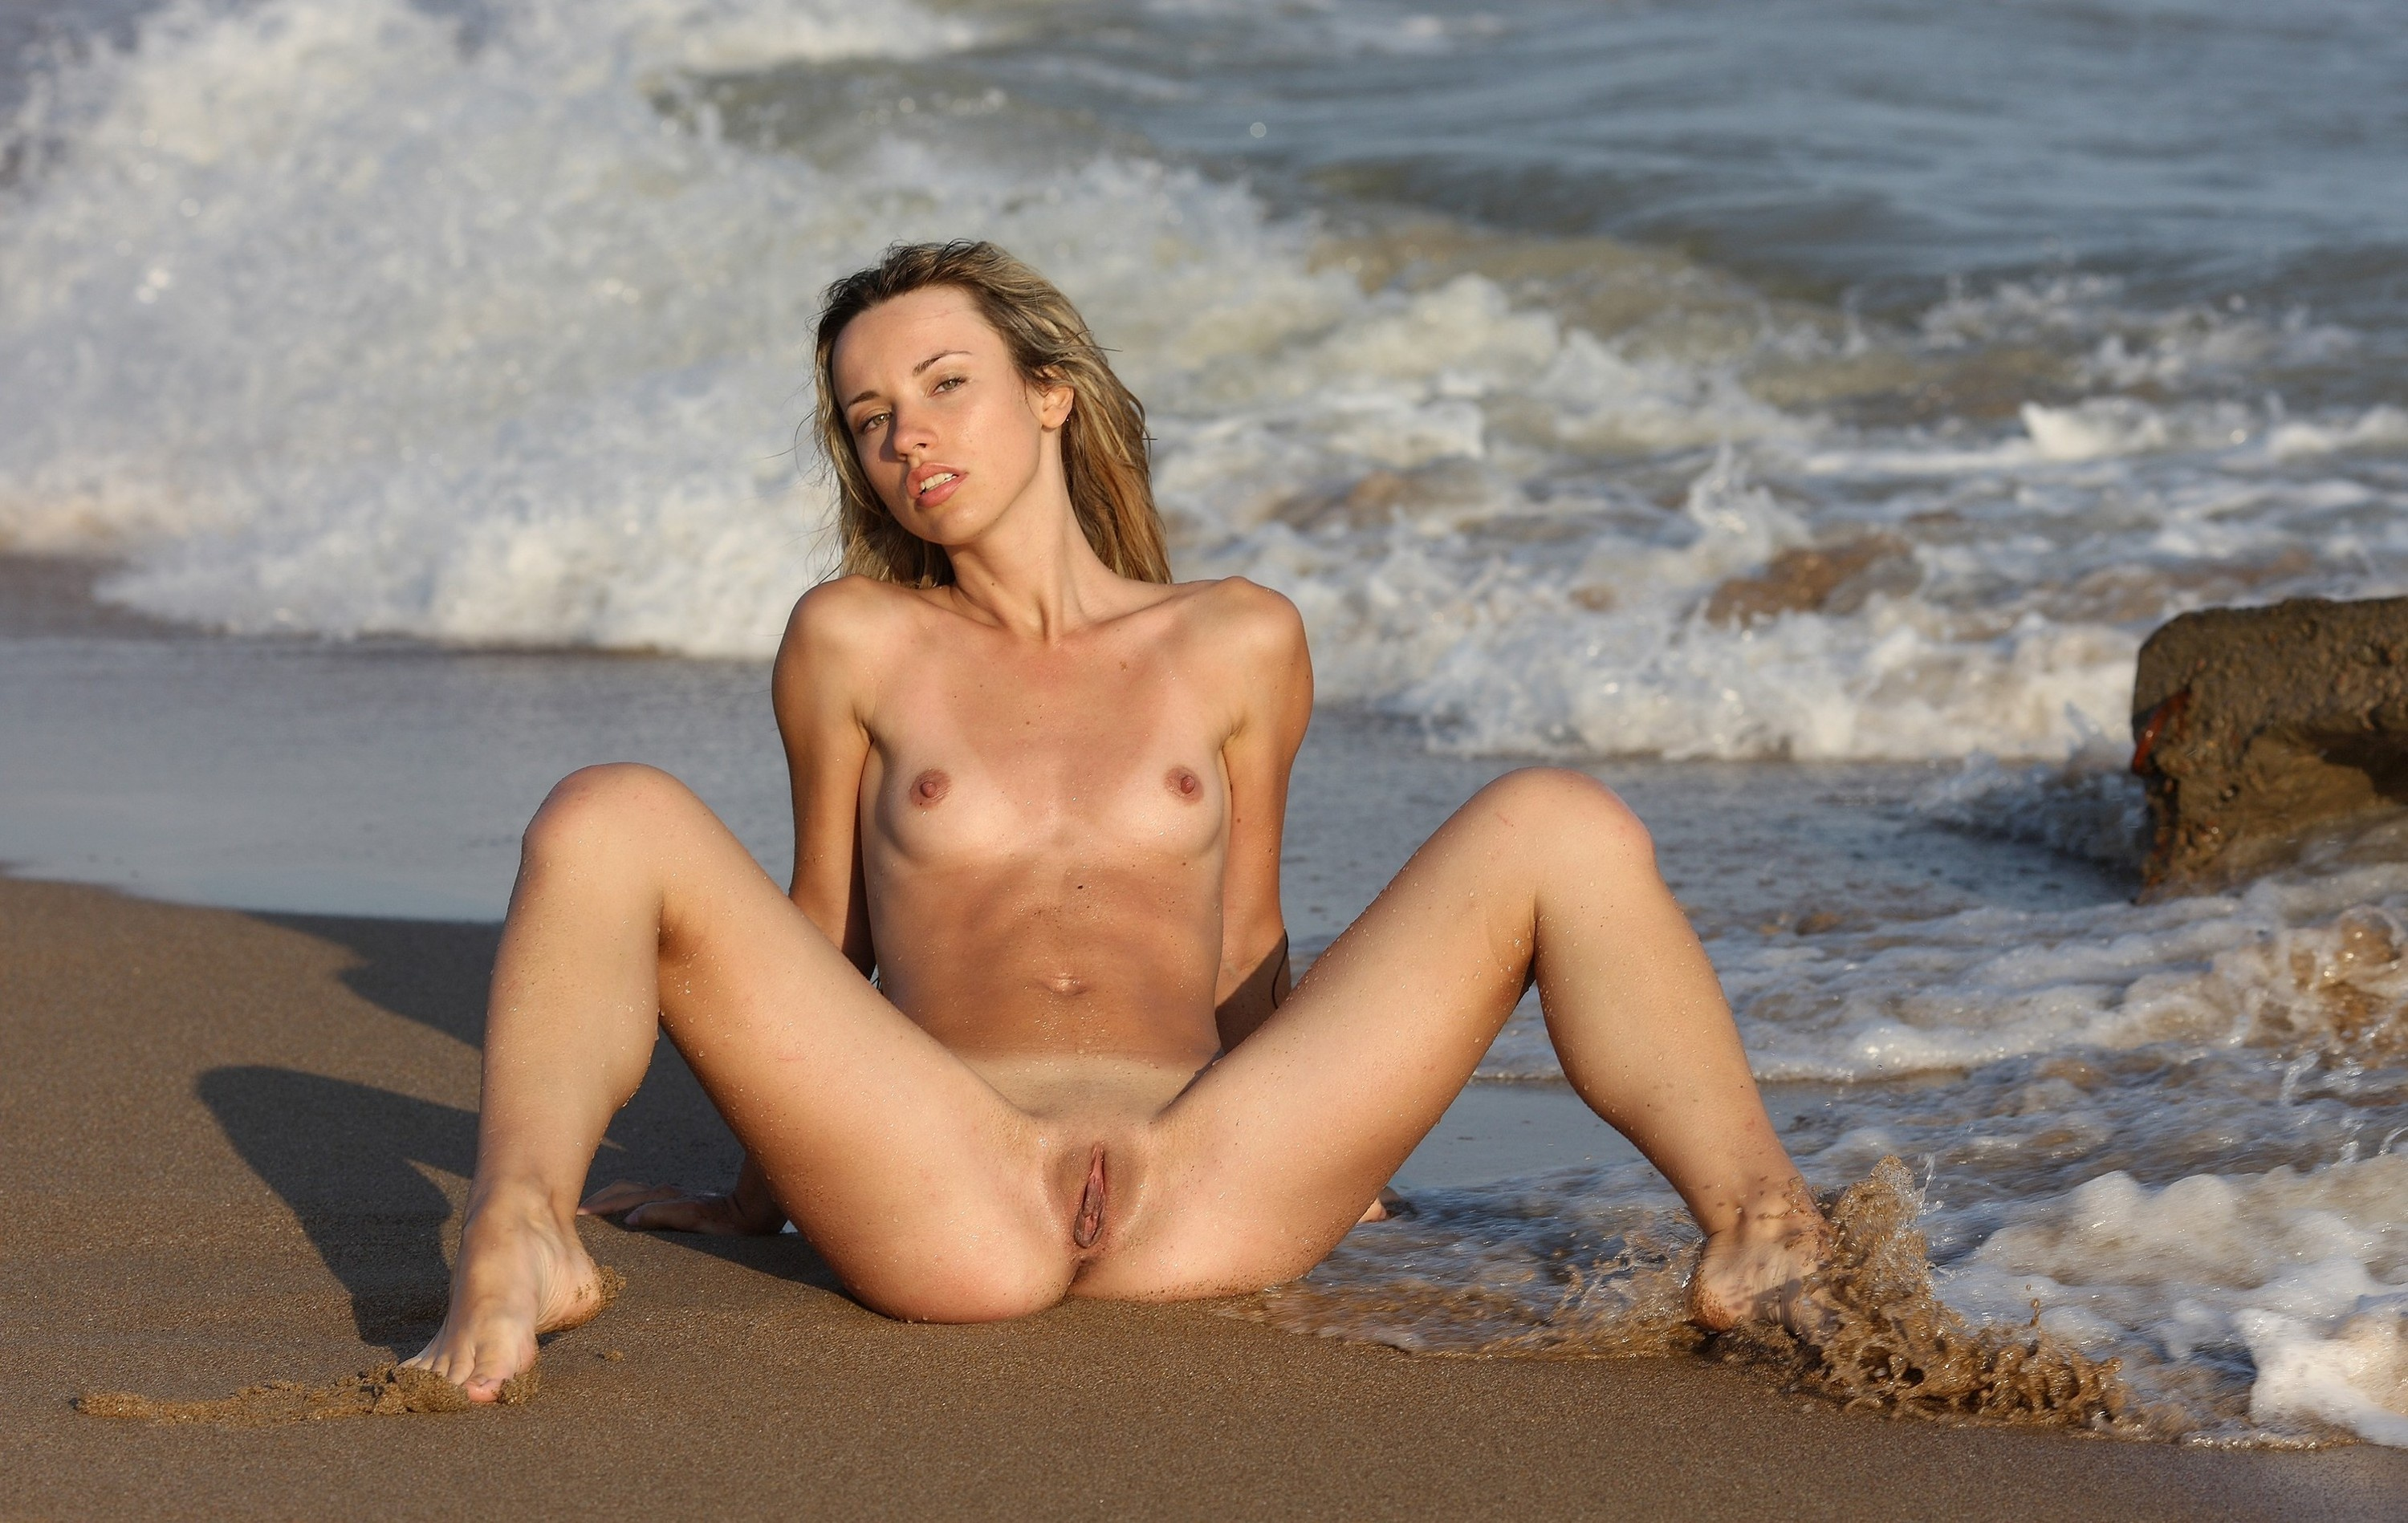 Wallpaper Blonde, Naked, Pussy, Boobs, Wet, Water, Beach -5651